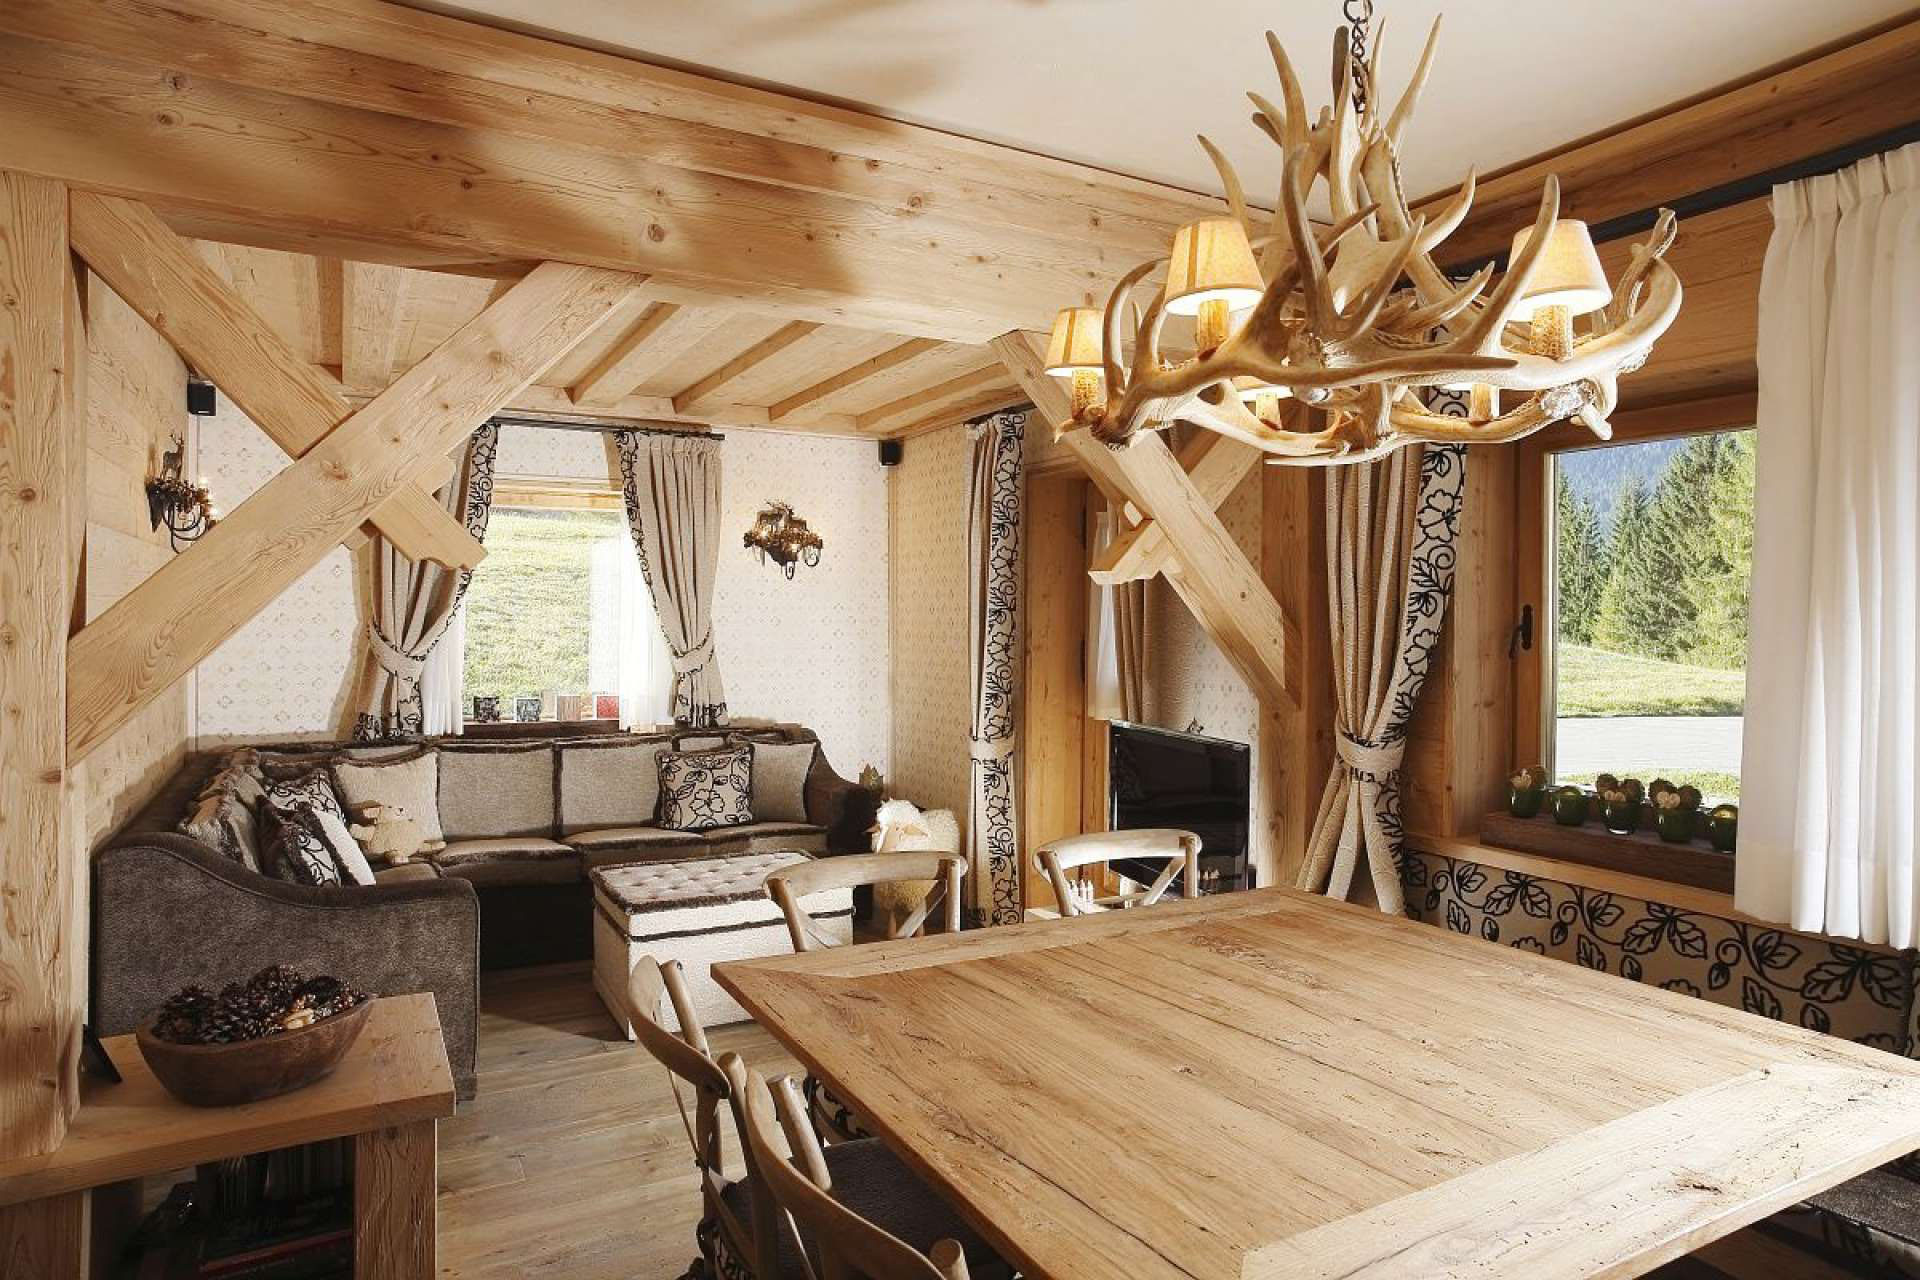 Rustic Alpine Apartment With Natural Wood Elements Idesignarch Interior Design Architecture